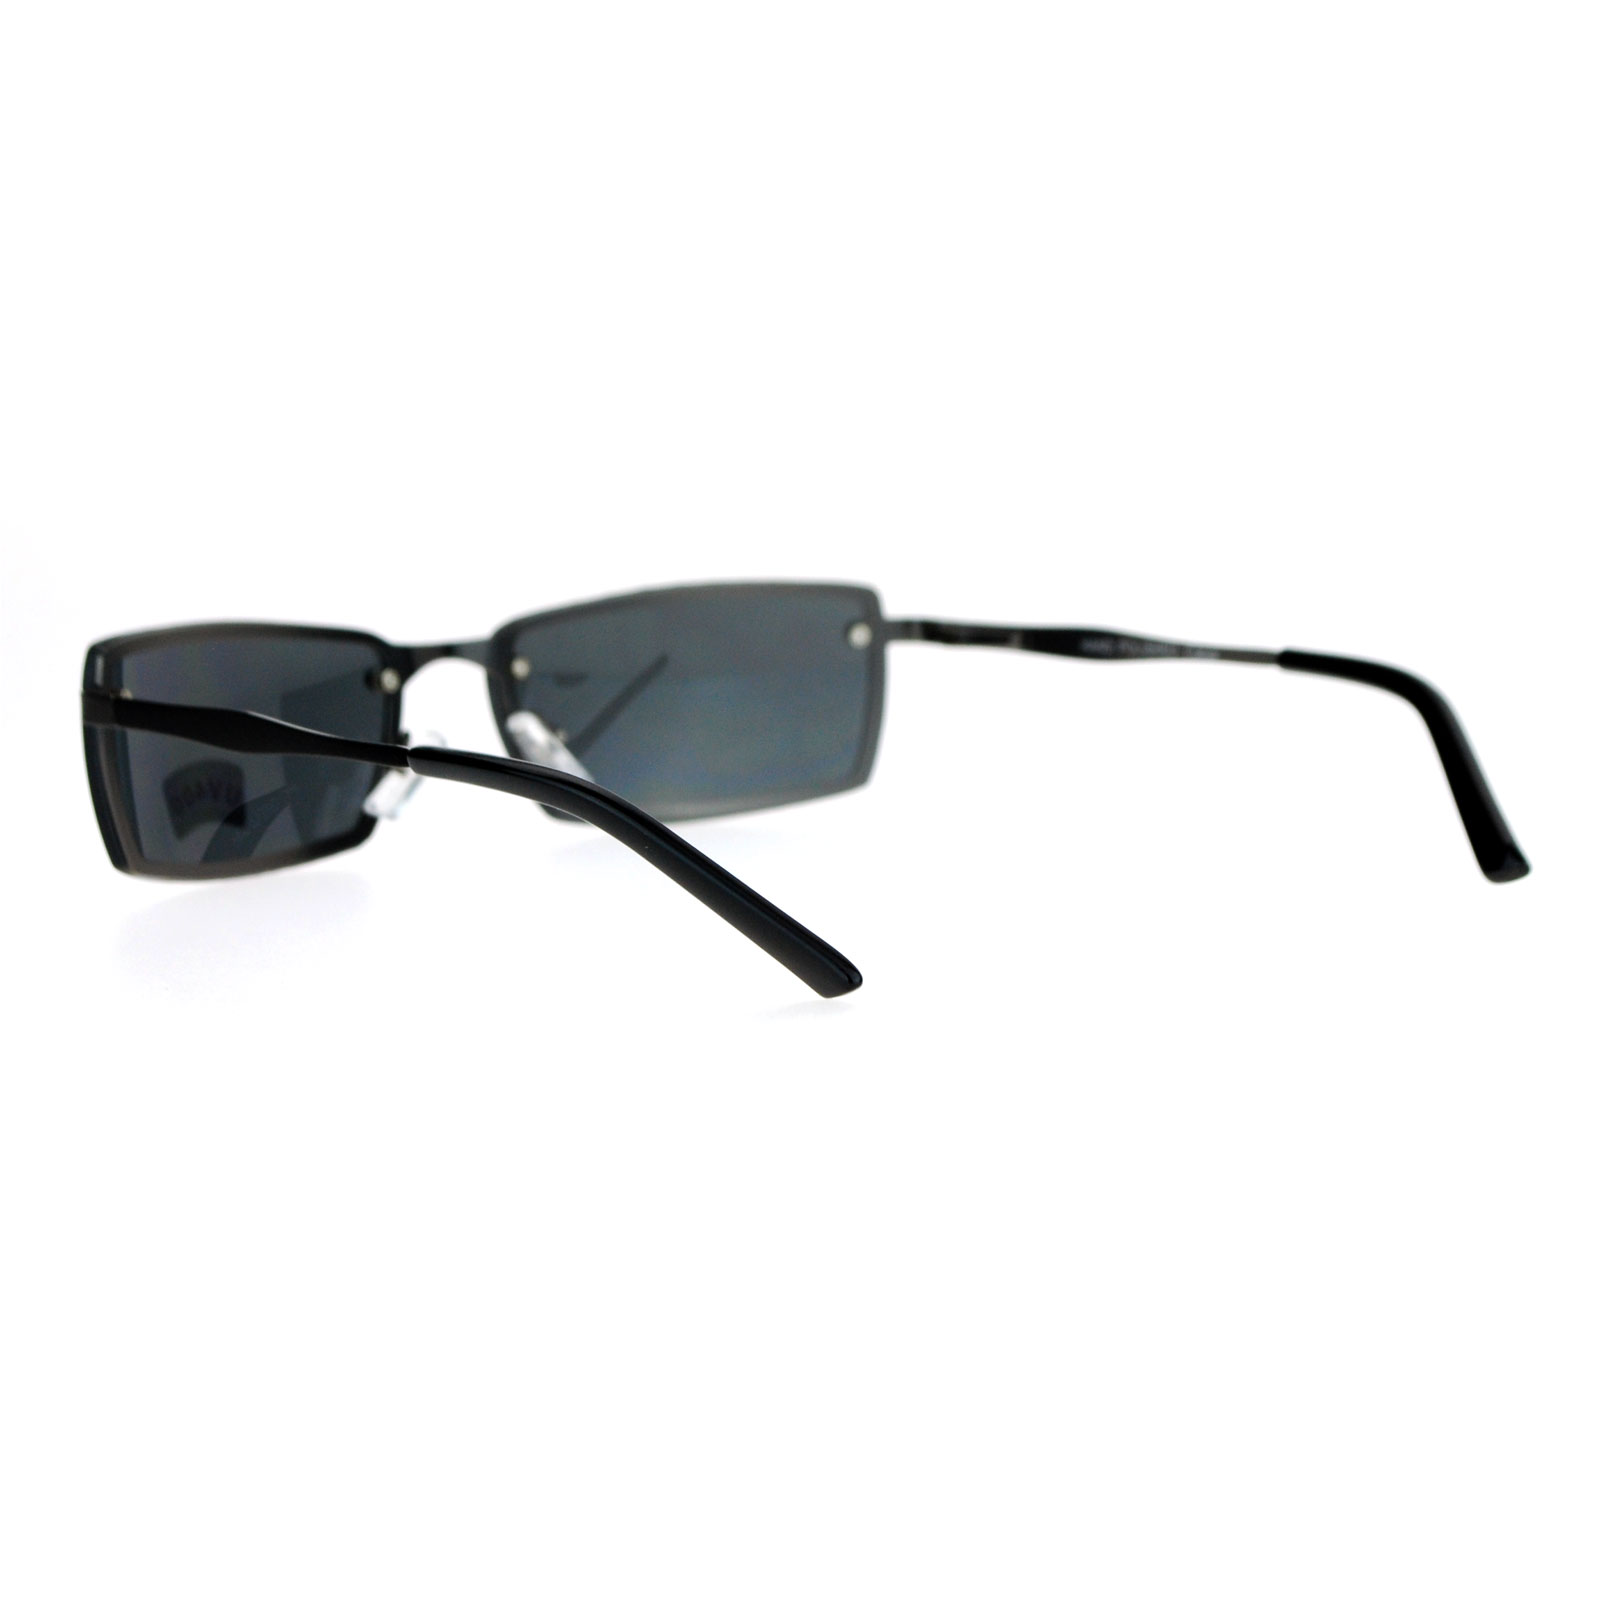 fb9d4966e5e SA106-Mens-Rimless-Narrow-Rectangular-Agent-Sunglasses thumbnail 4